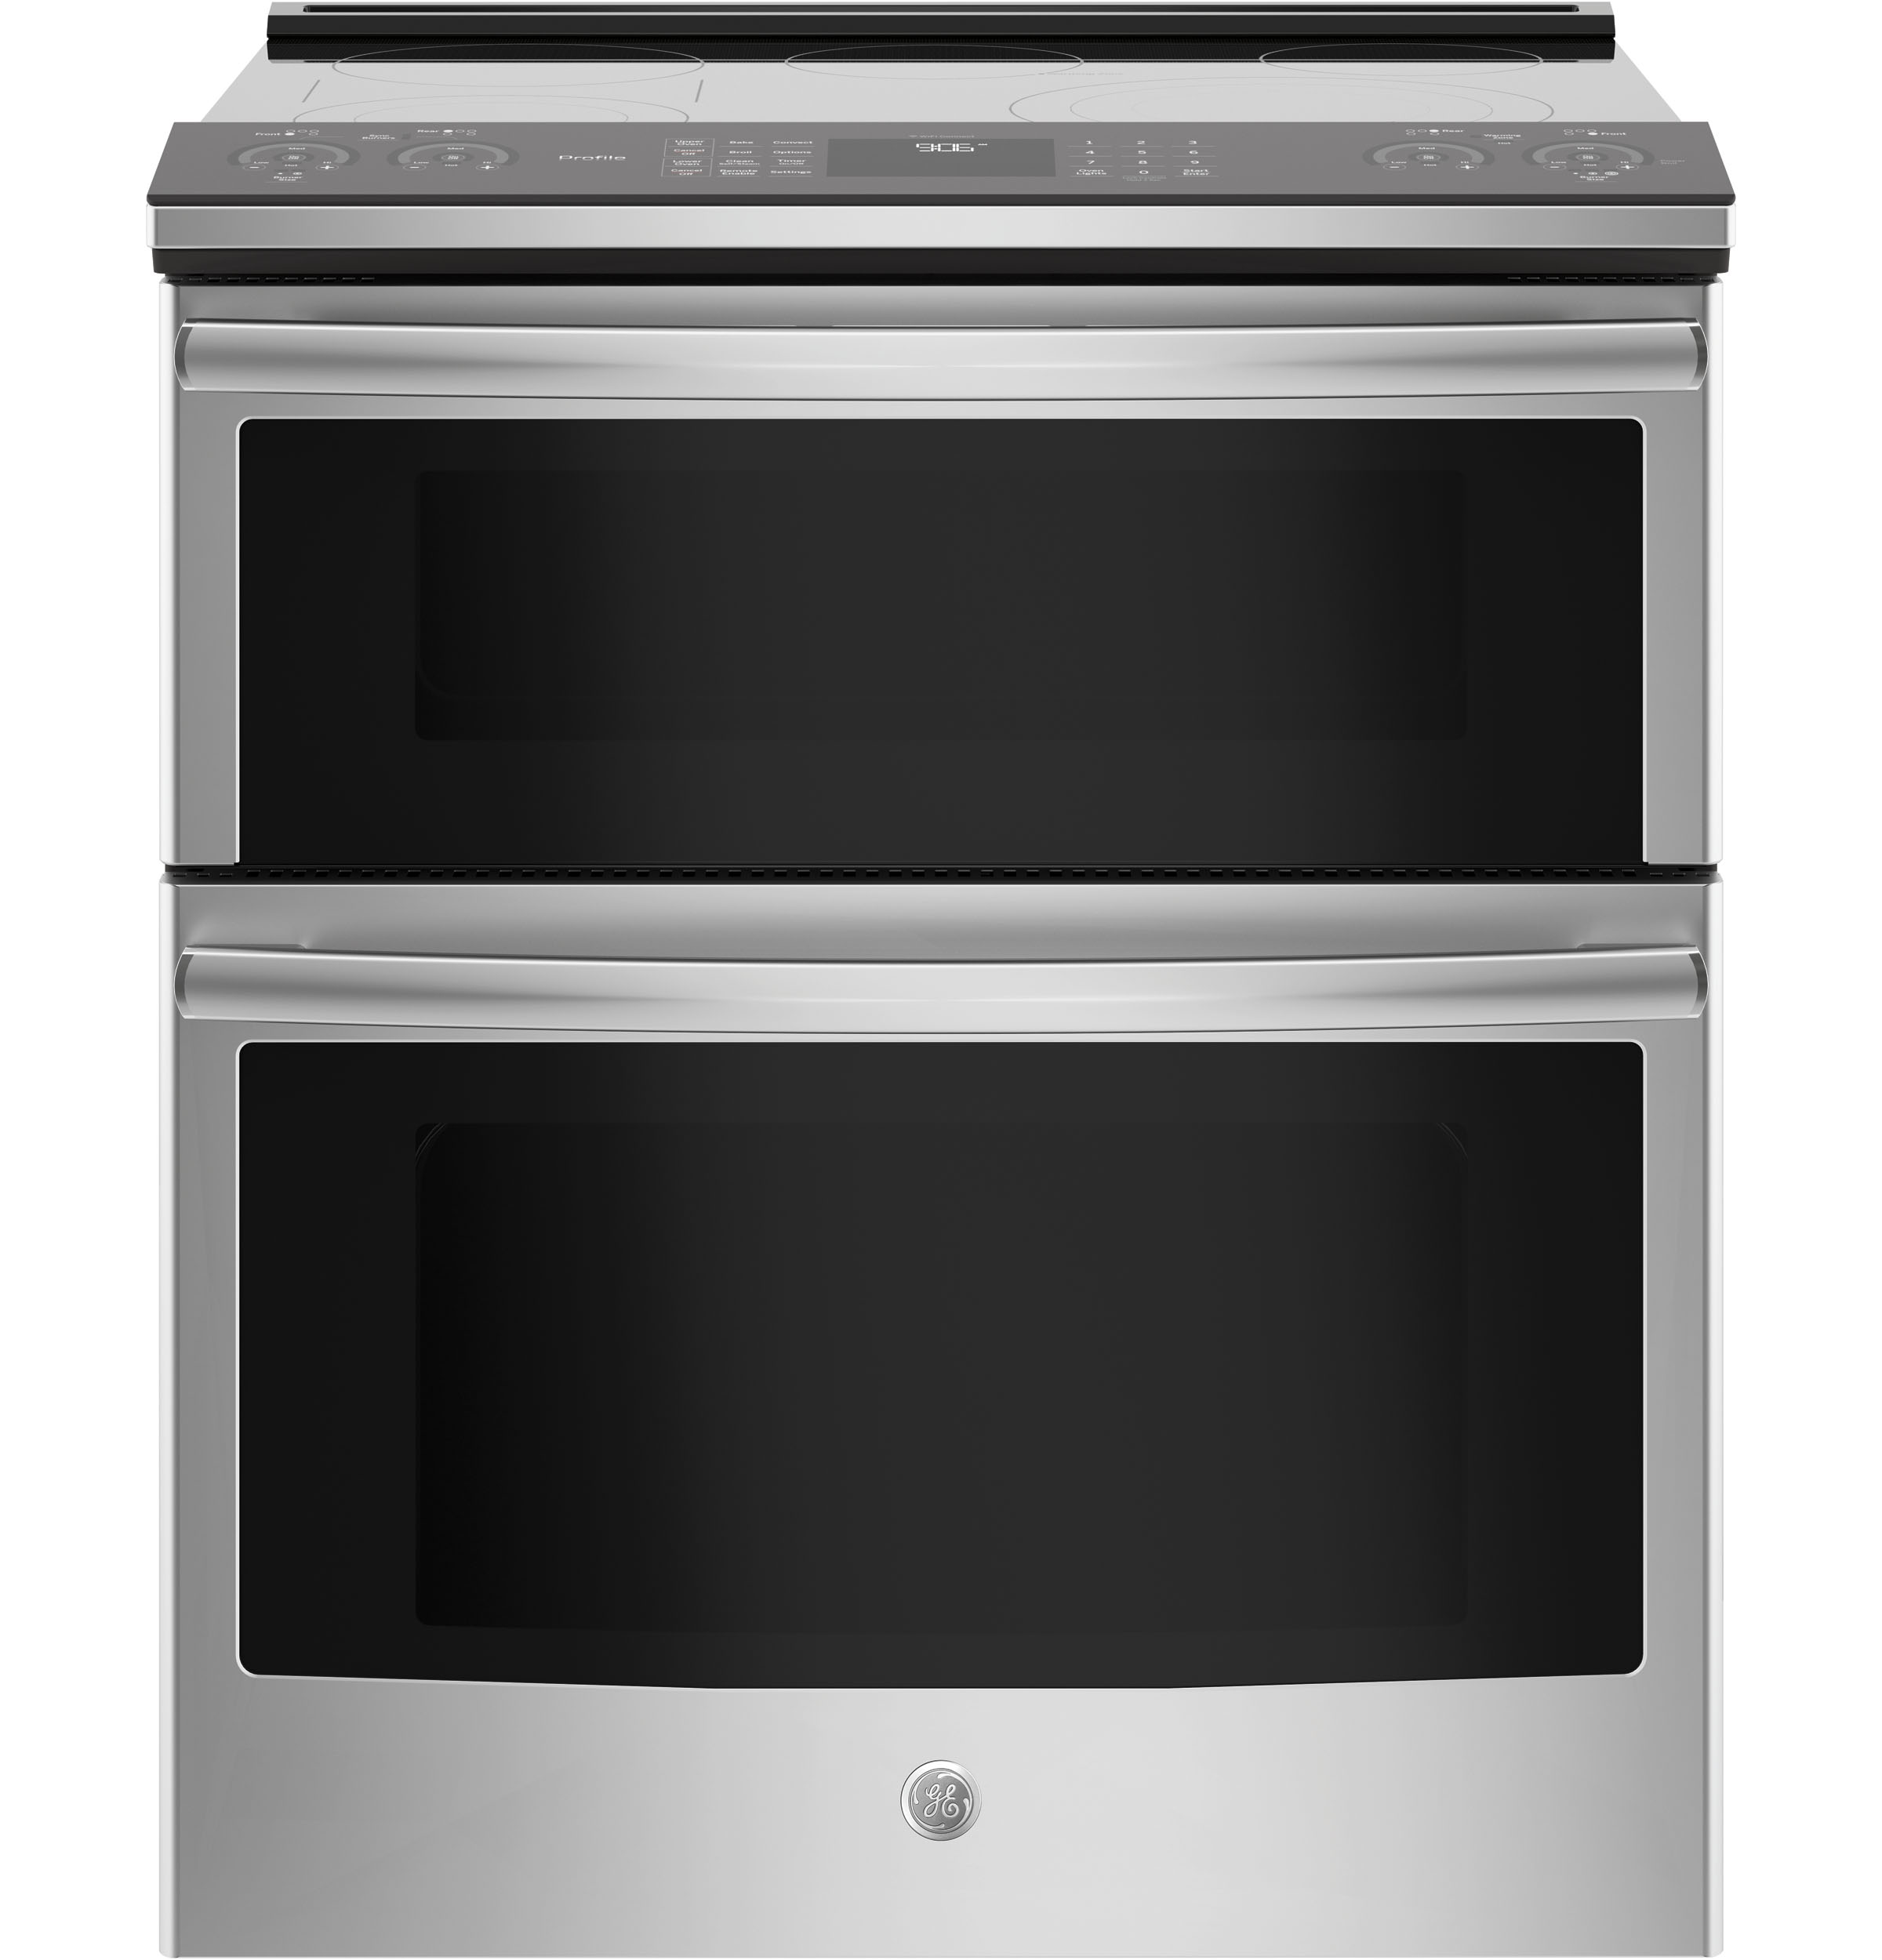 "GE Profile GE Profile™ Series 30"" Slide-In Electric Double Oven Convection Range"